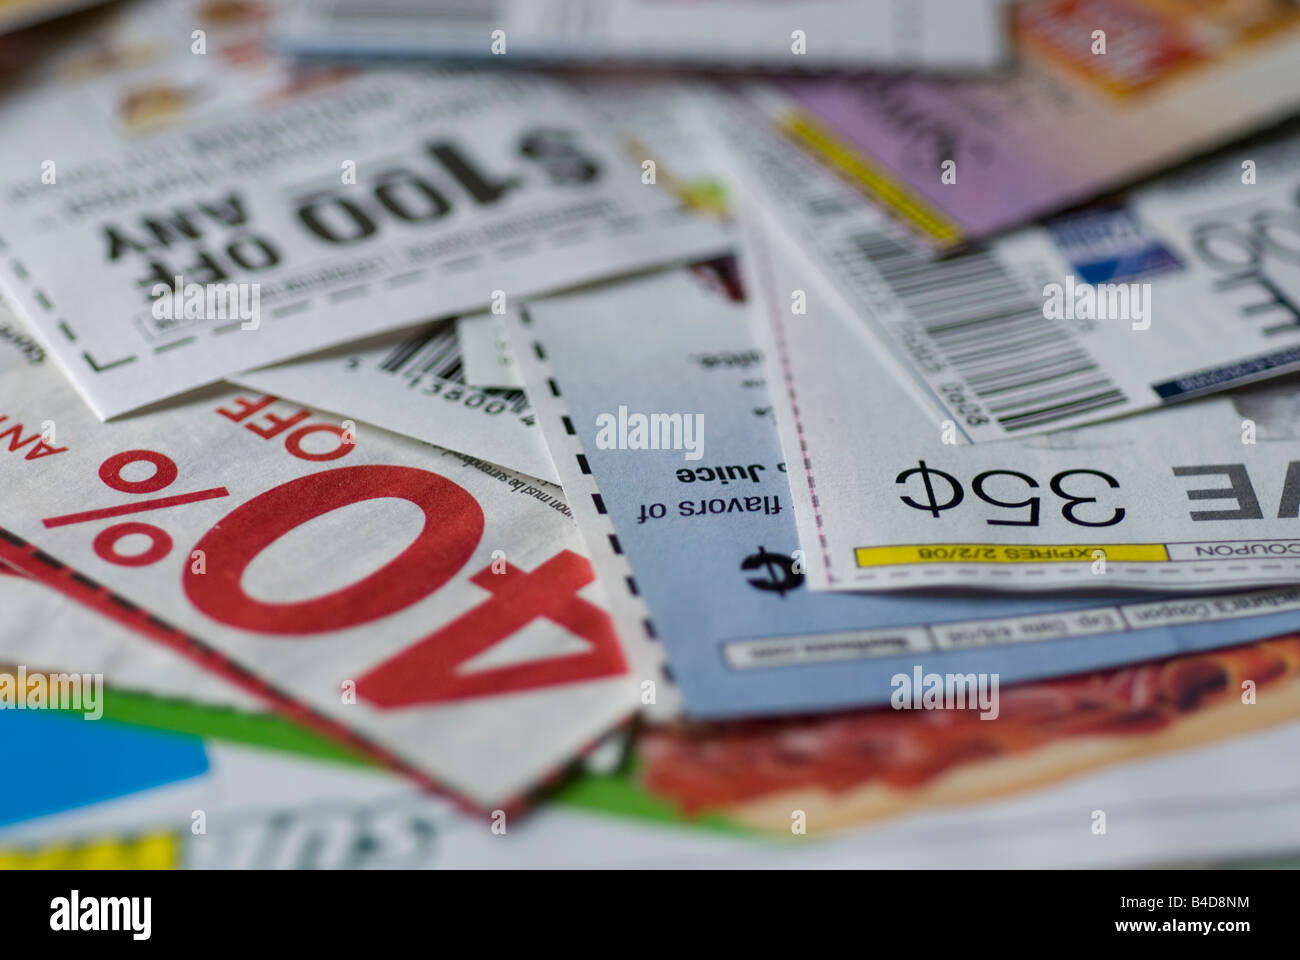 Buy clipped coupons